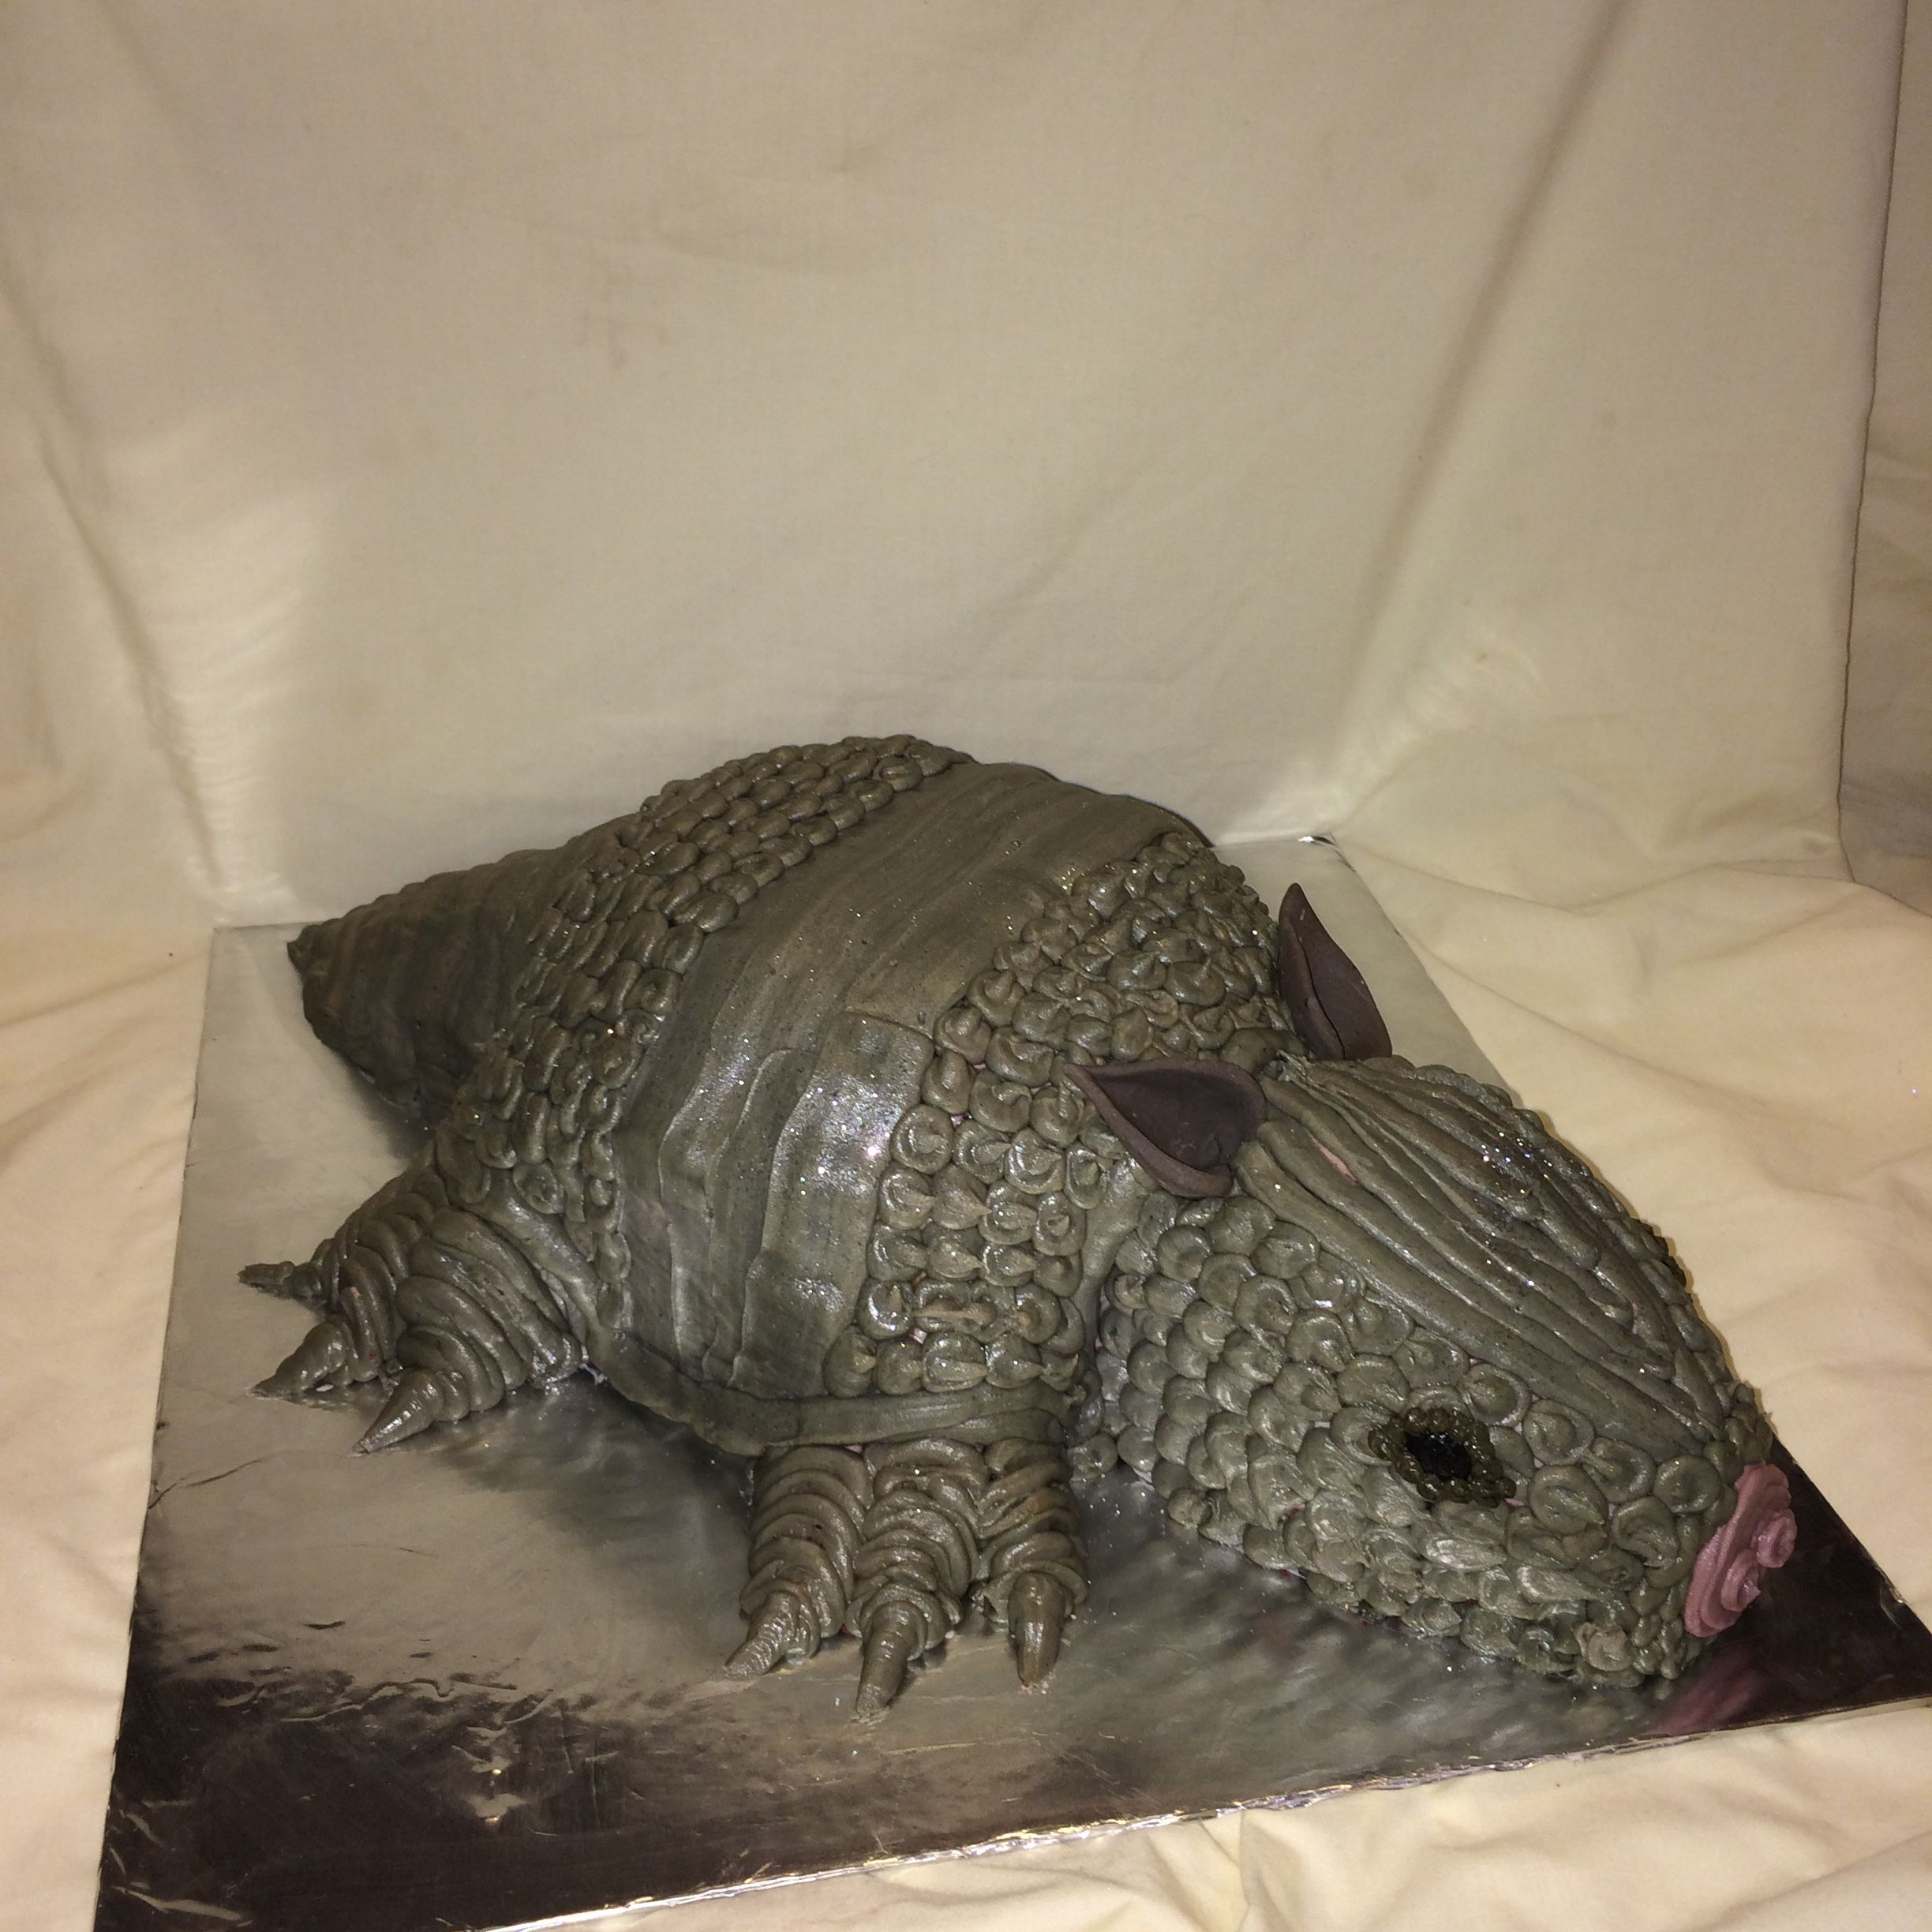 Red velvet bleeding armadillo cake by Inphinity Designs. Please visit my FB page Inphinity Designs at https://m.facebook.com/profile.php?id=71791500352&refsrc=https%3A%2F%2Fwww.facebook.com%2Fpages%2FInphinity-Designs%2F71791500352